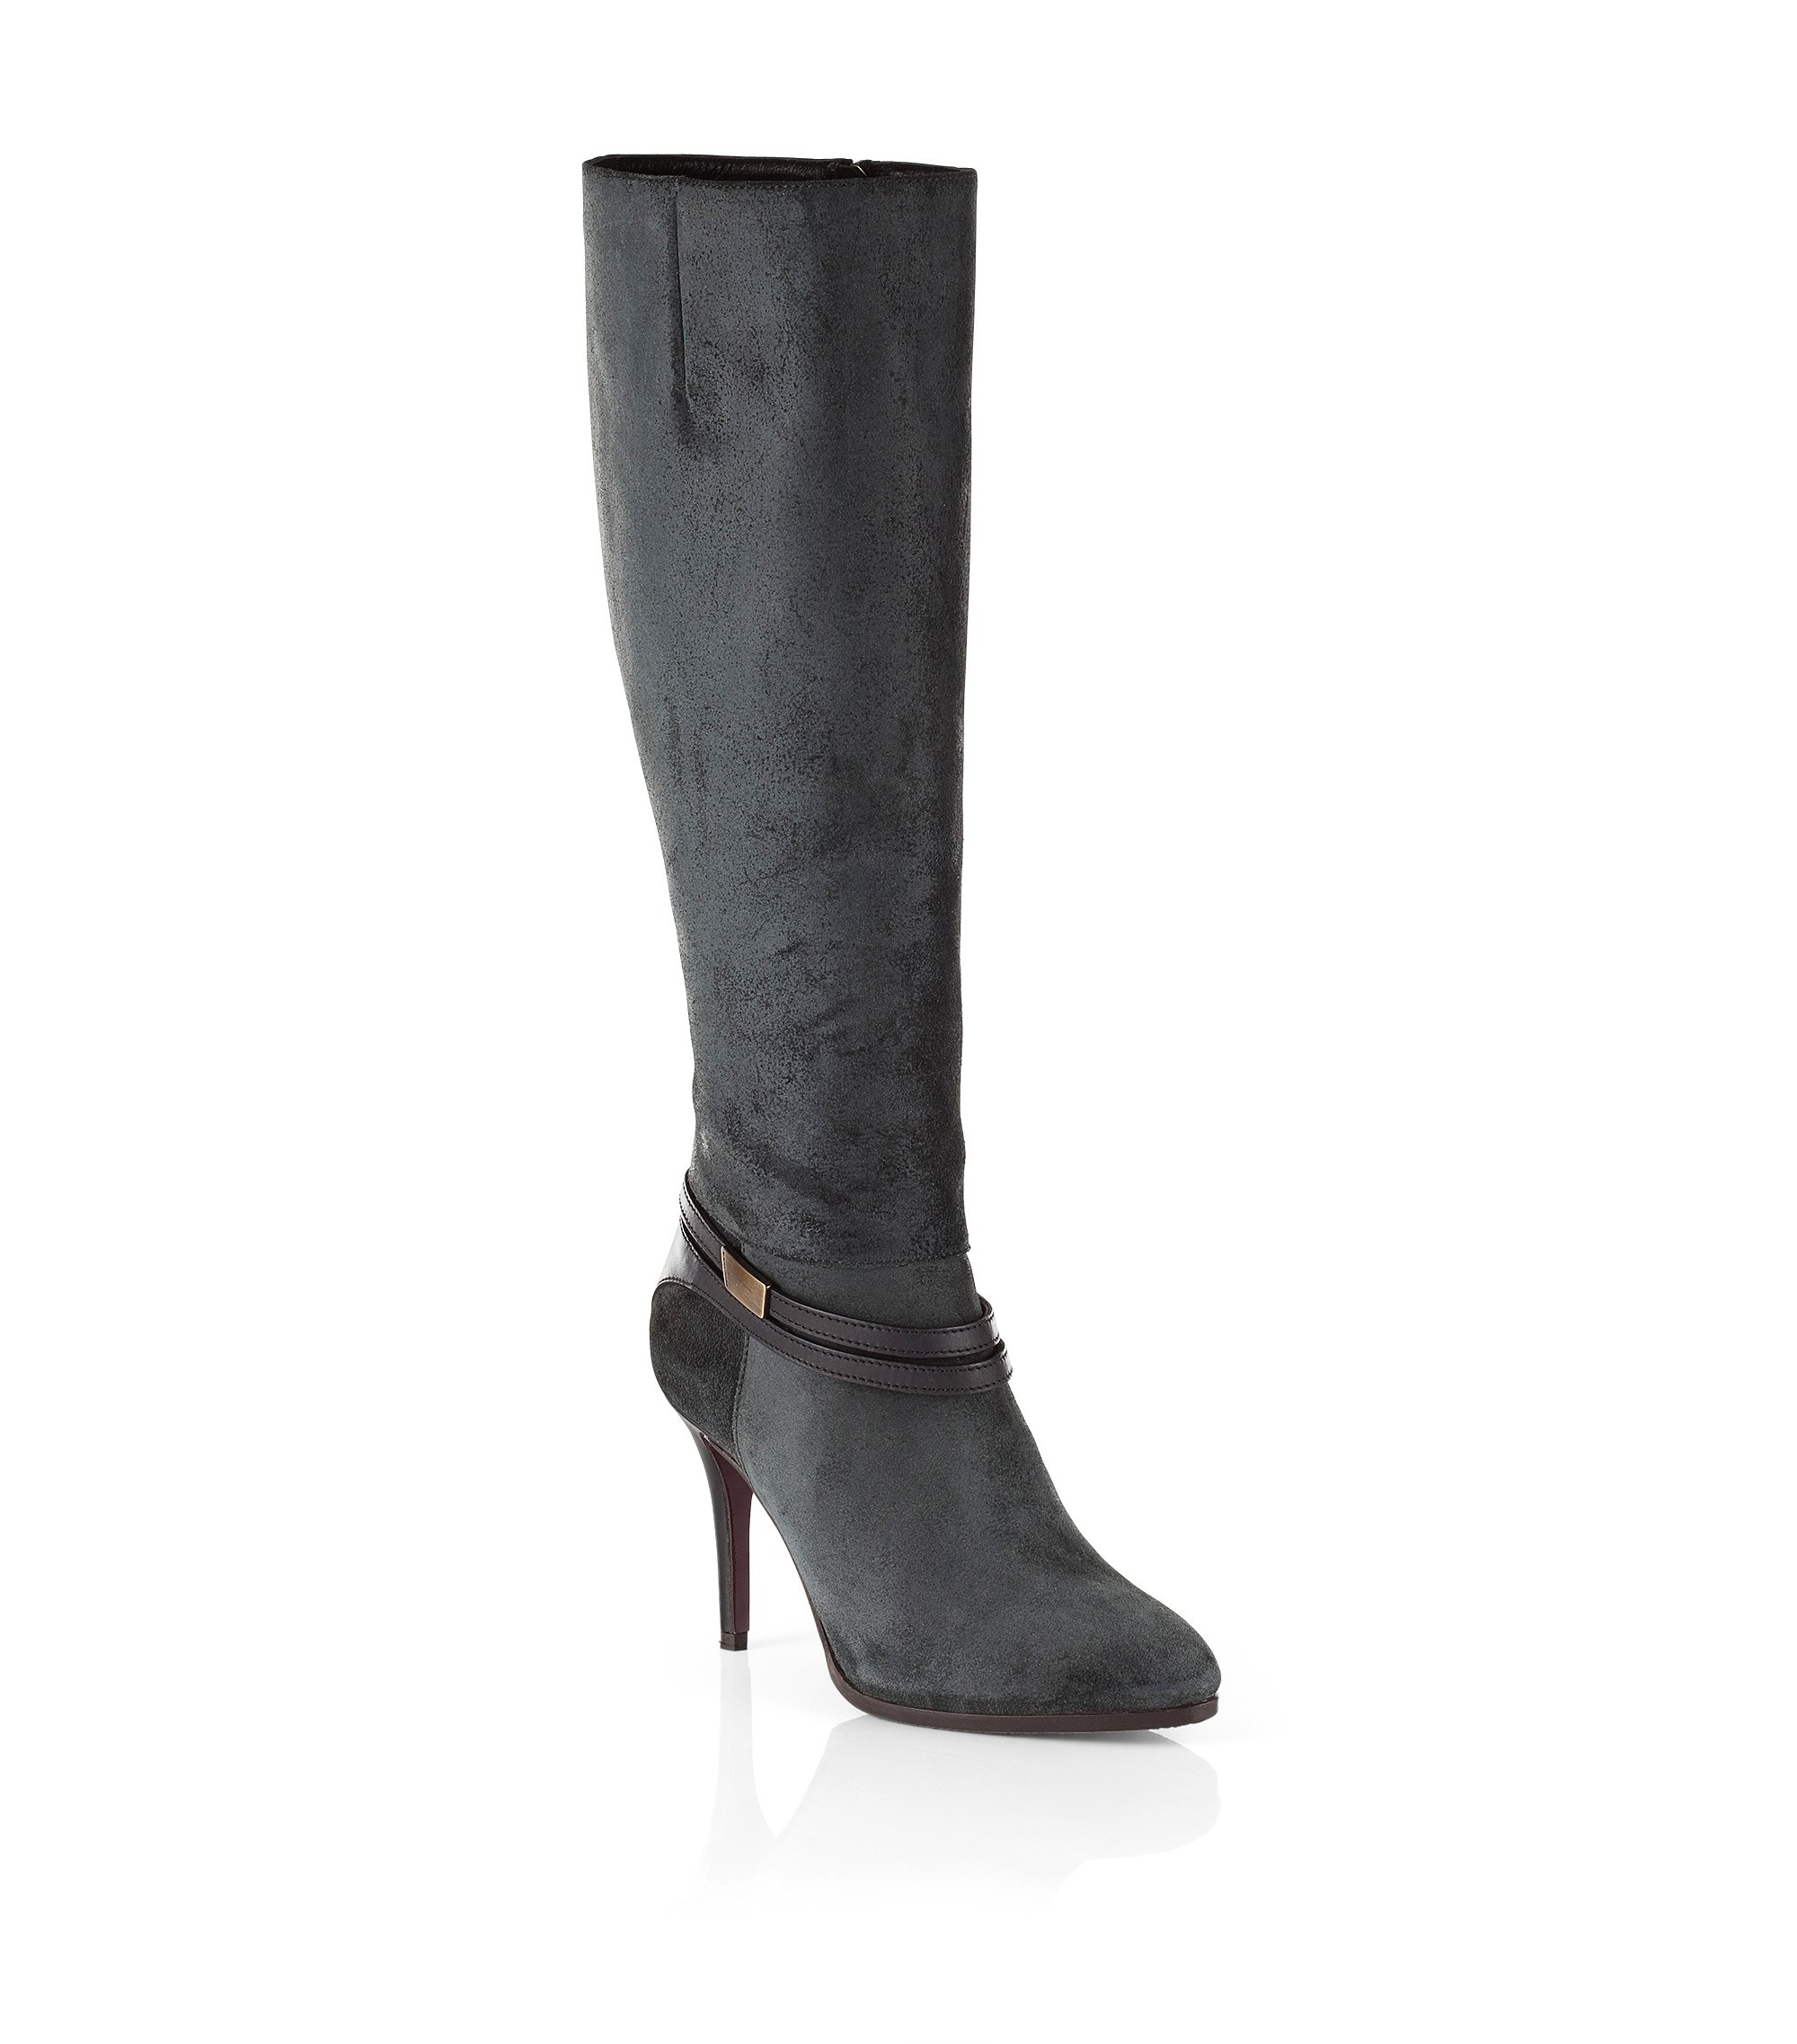 Leather boot 'Hariette', Black